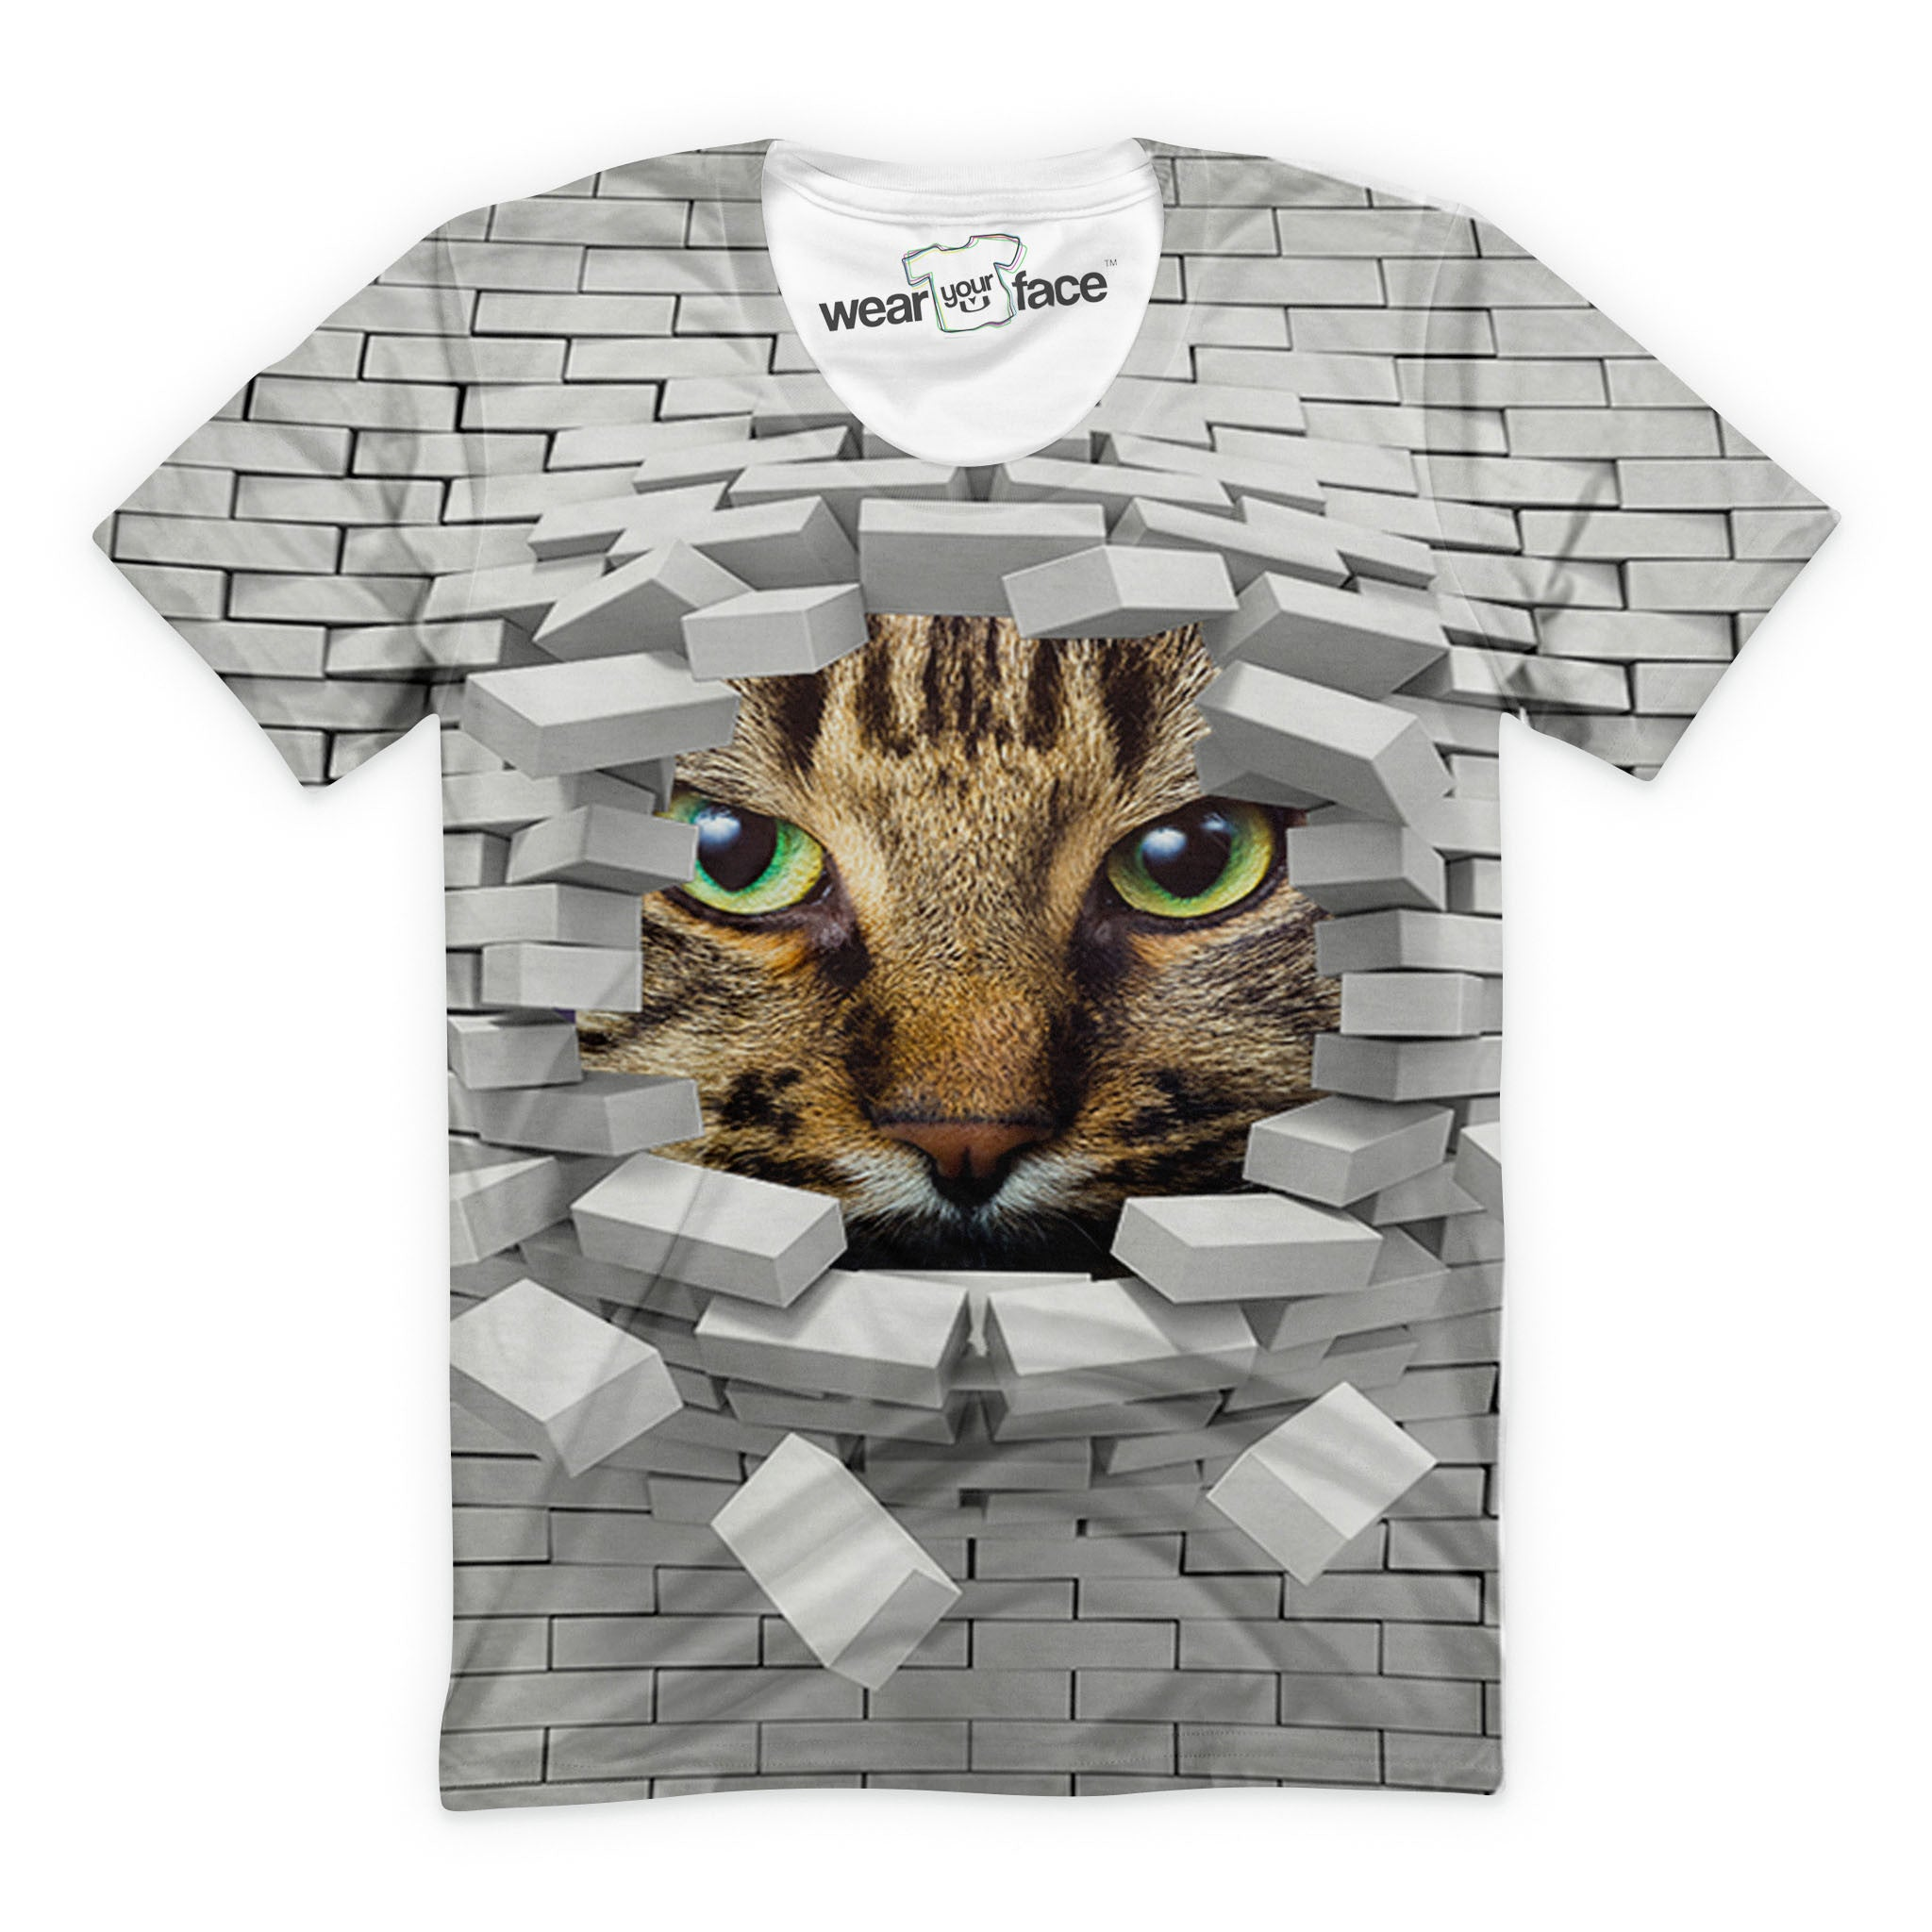 Breaking Through Bricks Cat T-Shirt